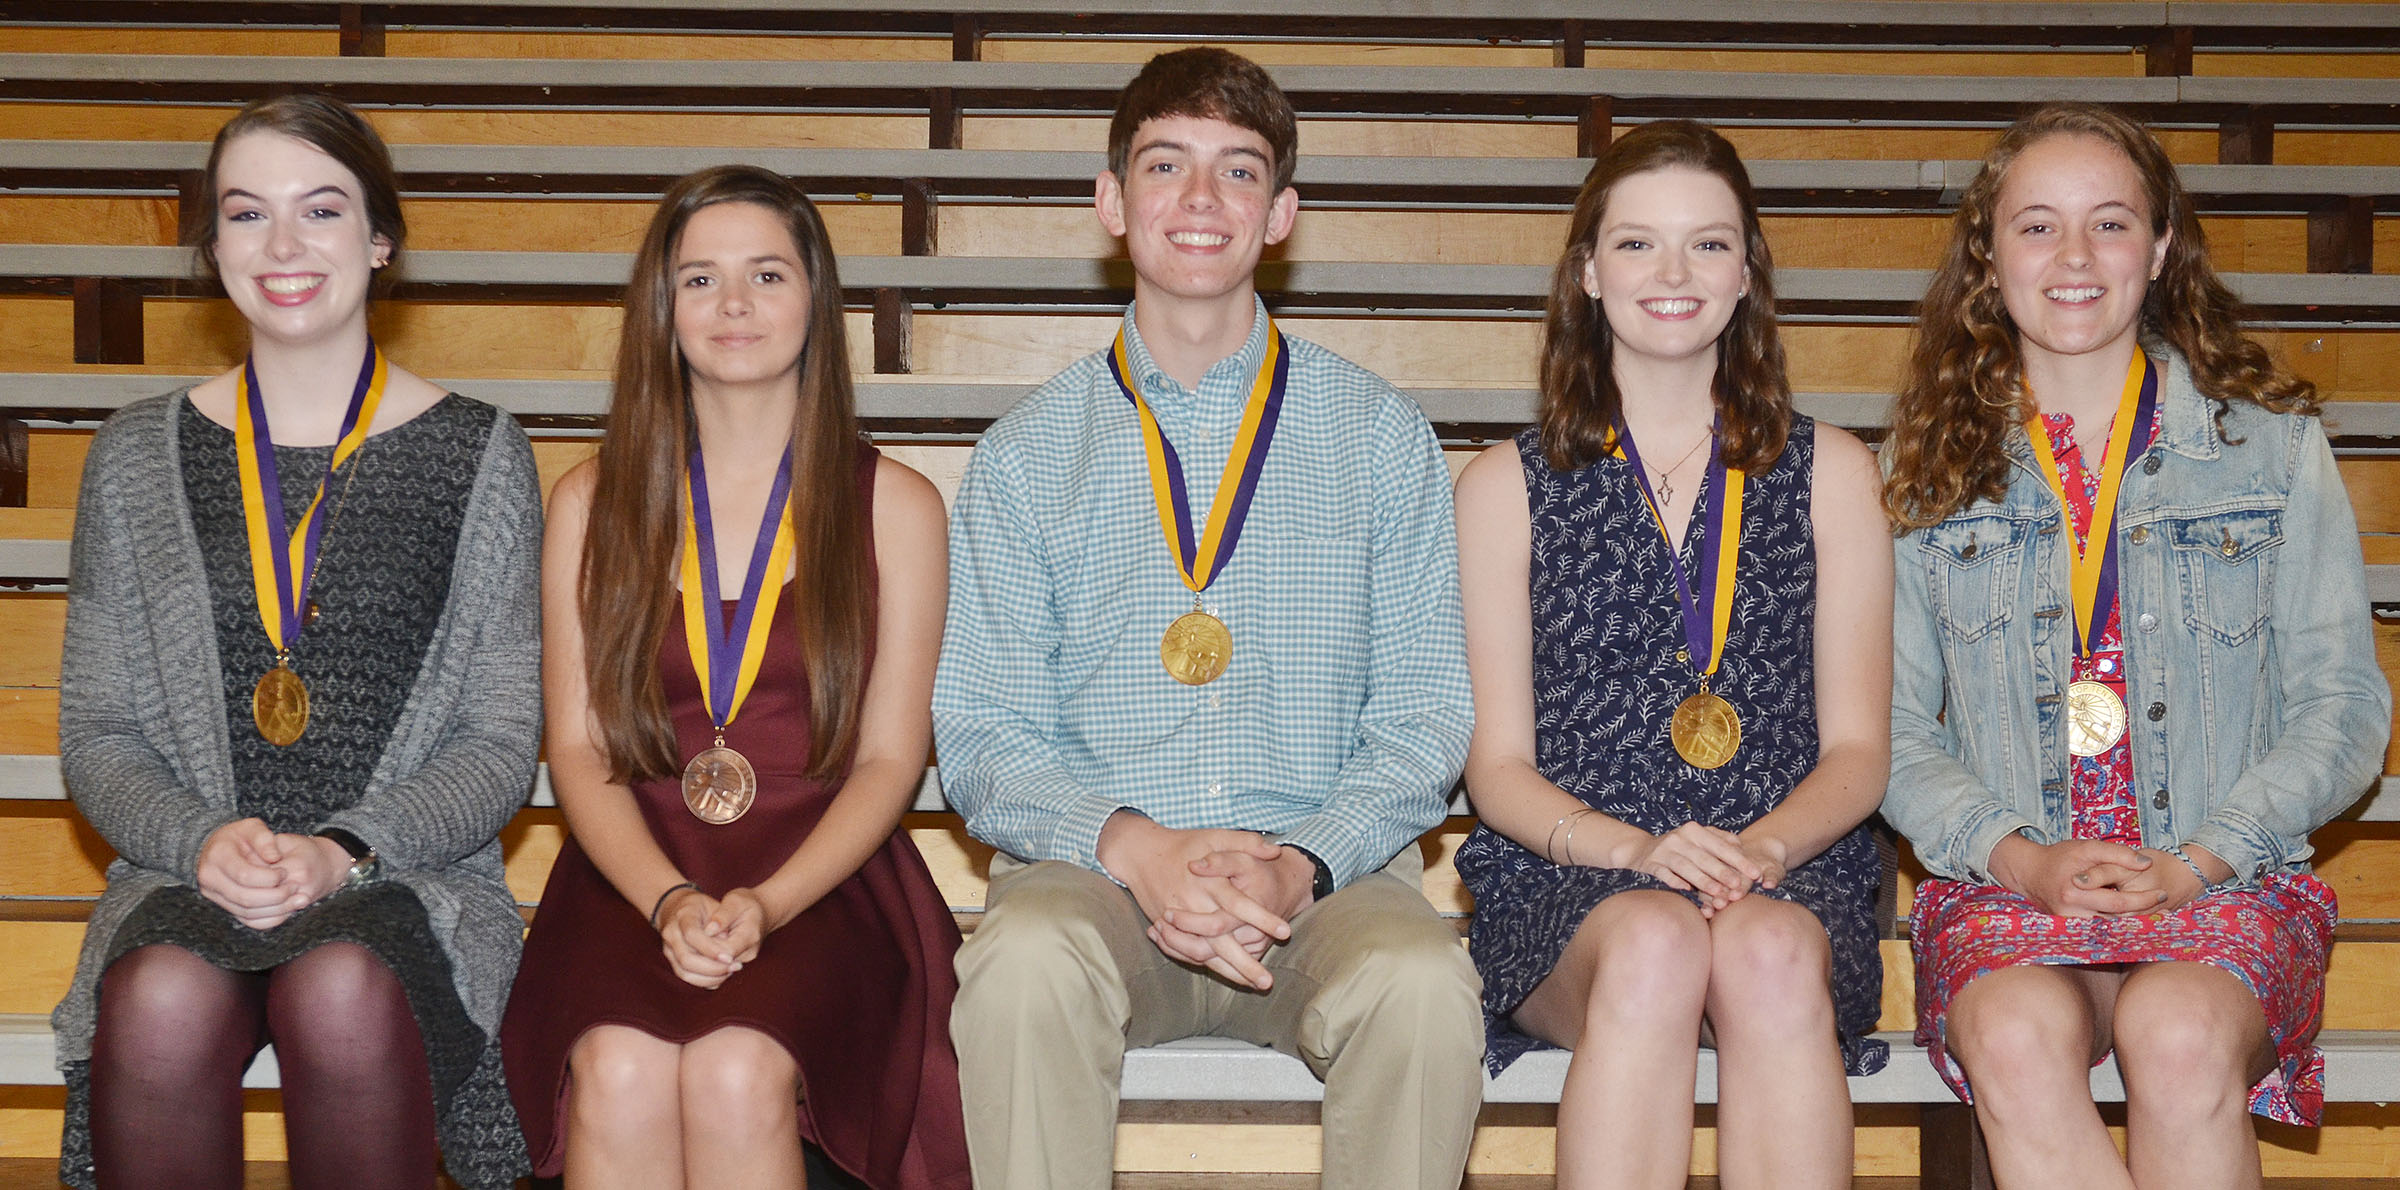 CHS seniors honored at this year's Top 10 percent banquet are, from left, Laura Lamb, Shauna Jones, Murphy Lamb, Blair Lamb and Caroline McMahan. Absent is Tiffany Stagner.